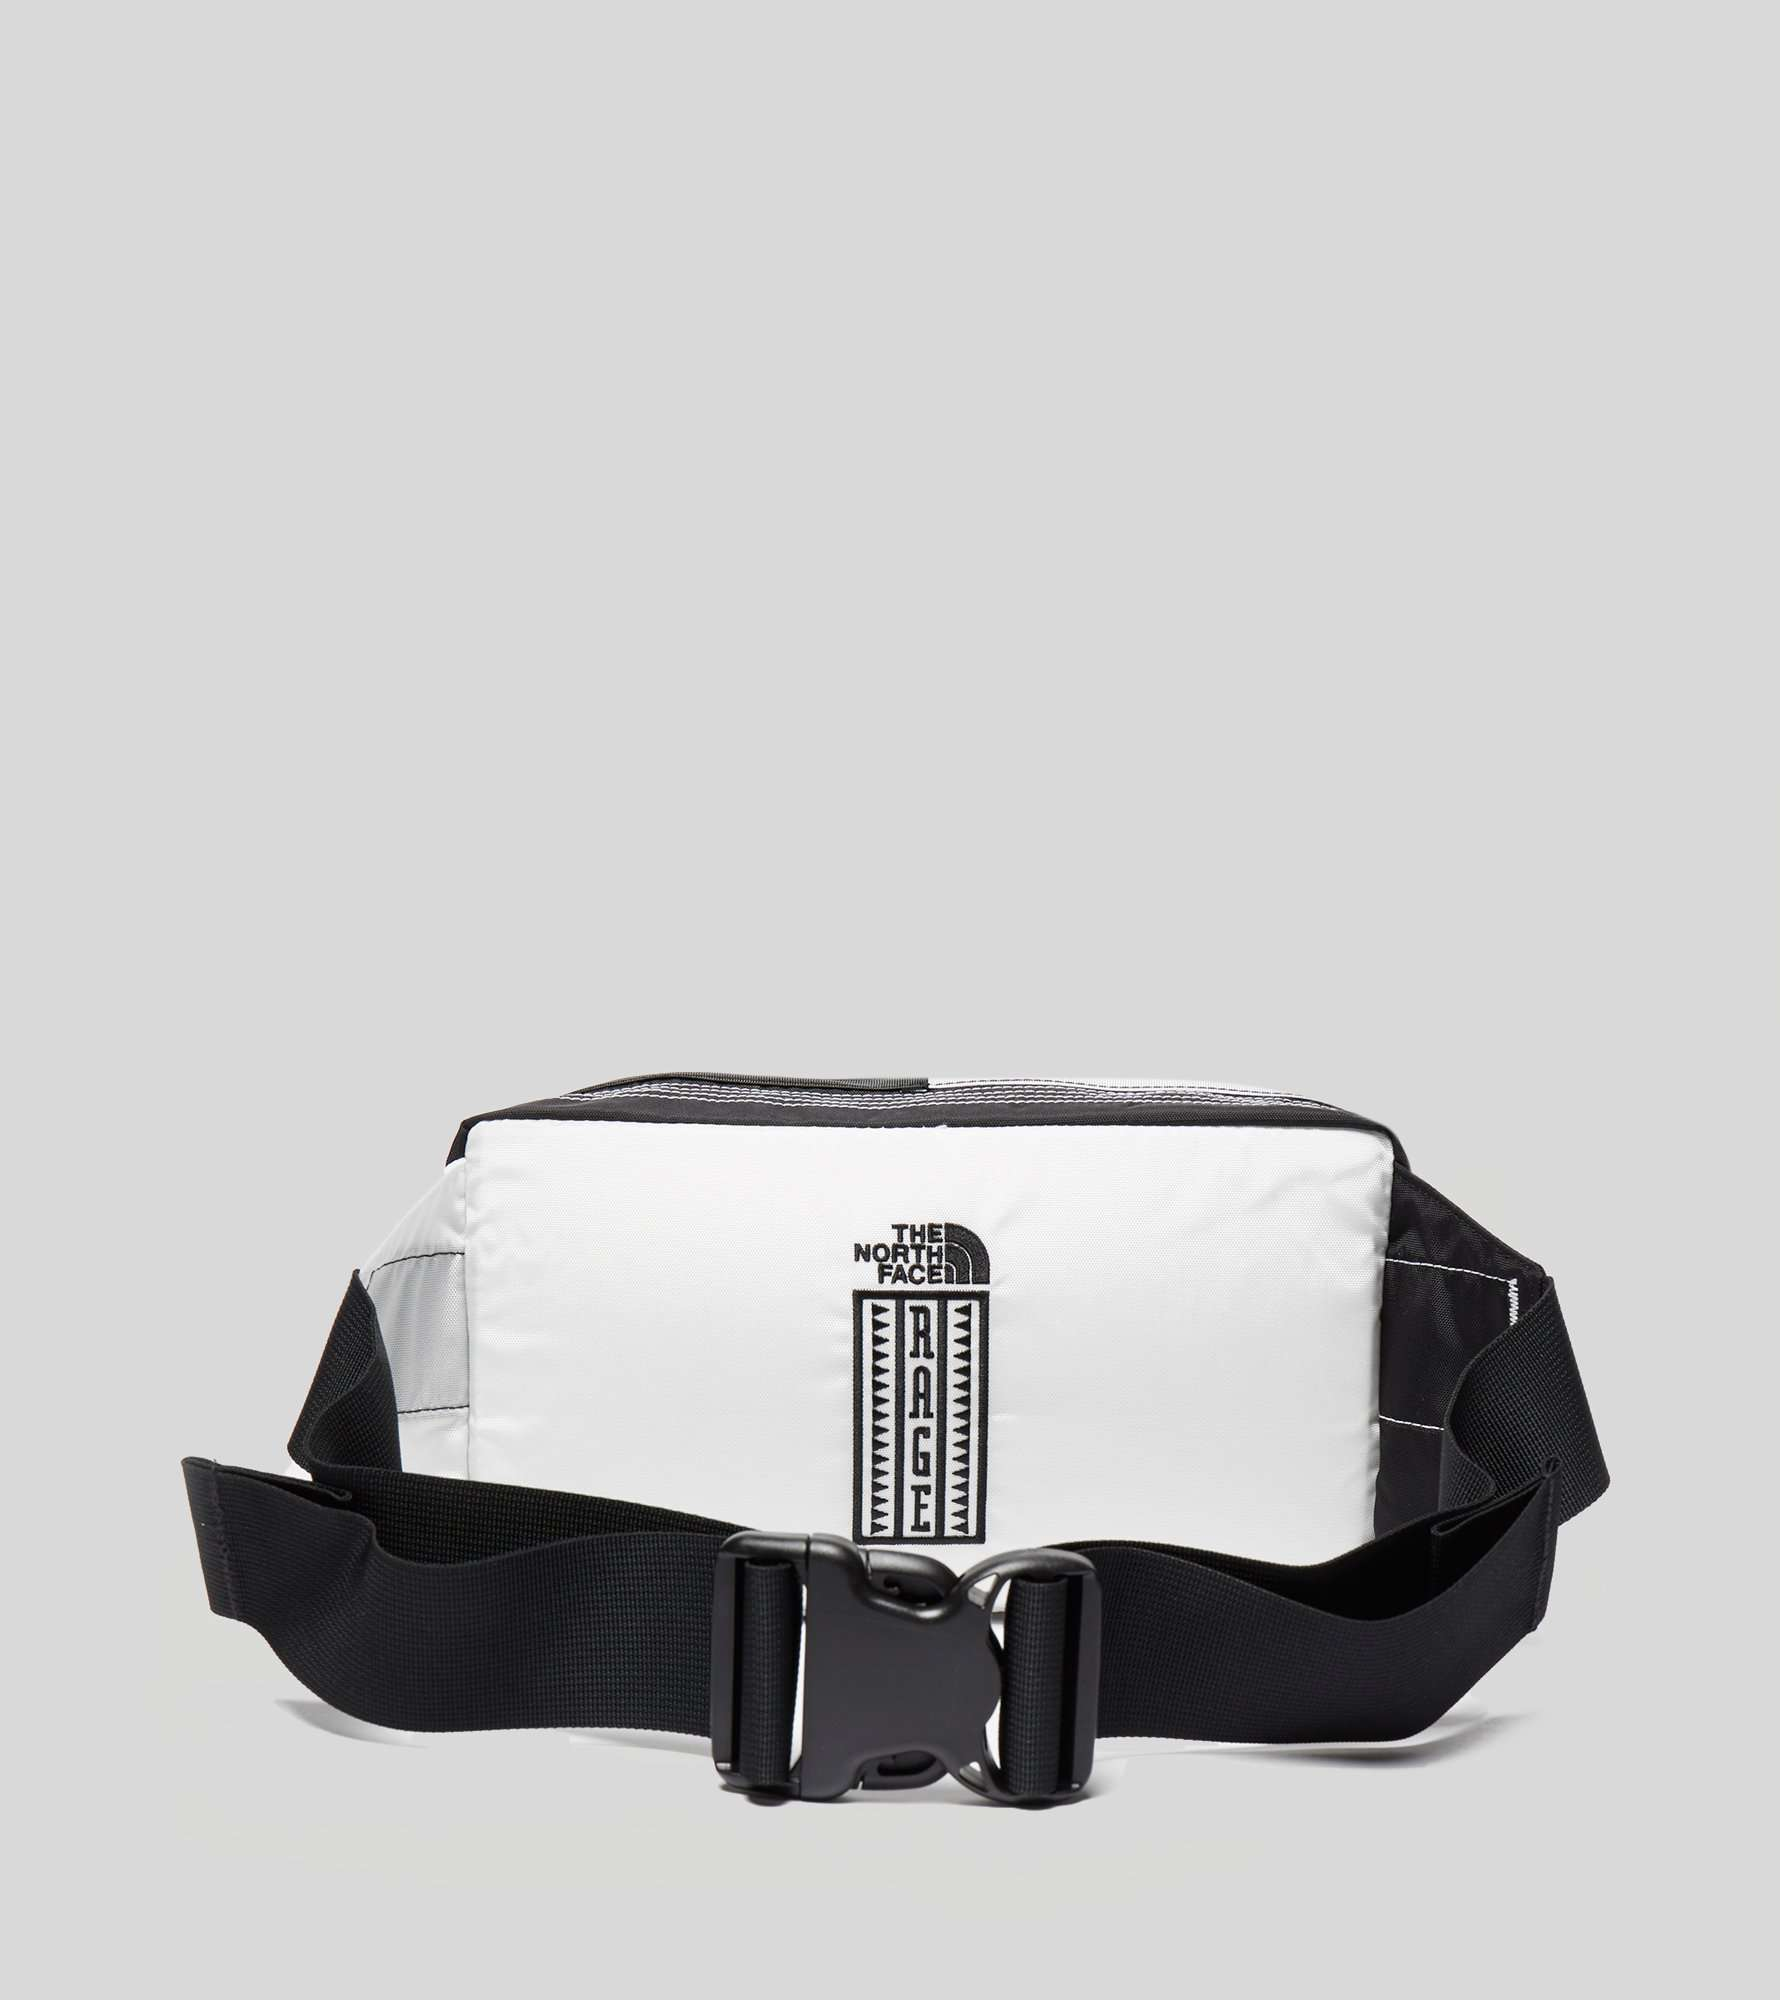 The North Face Rage '92 Waist Bag